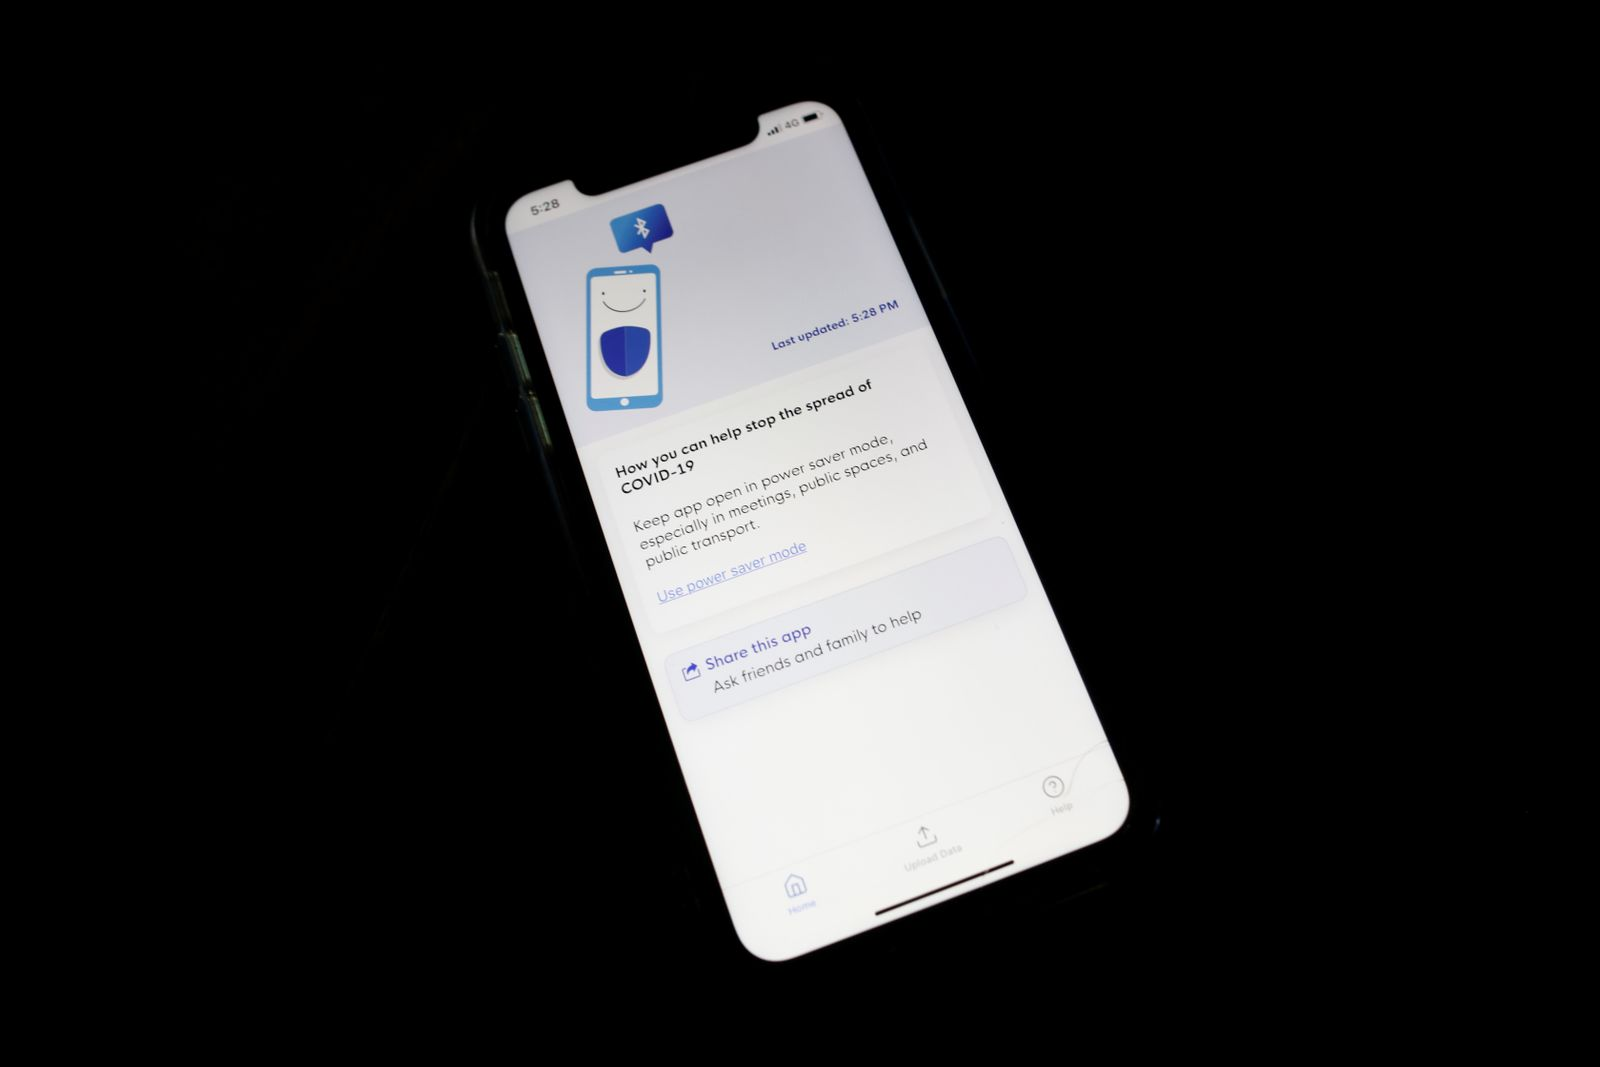 Contact tracing app TraceTogether, released by the Singapore government to curb the spread of the coronavirus disease (COVID-19) is seen on a mobile phone, in Singapore